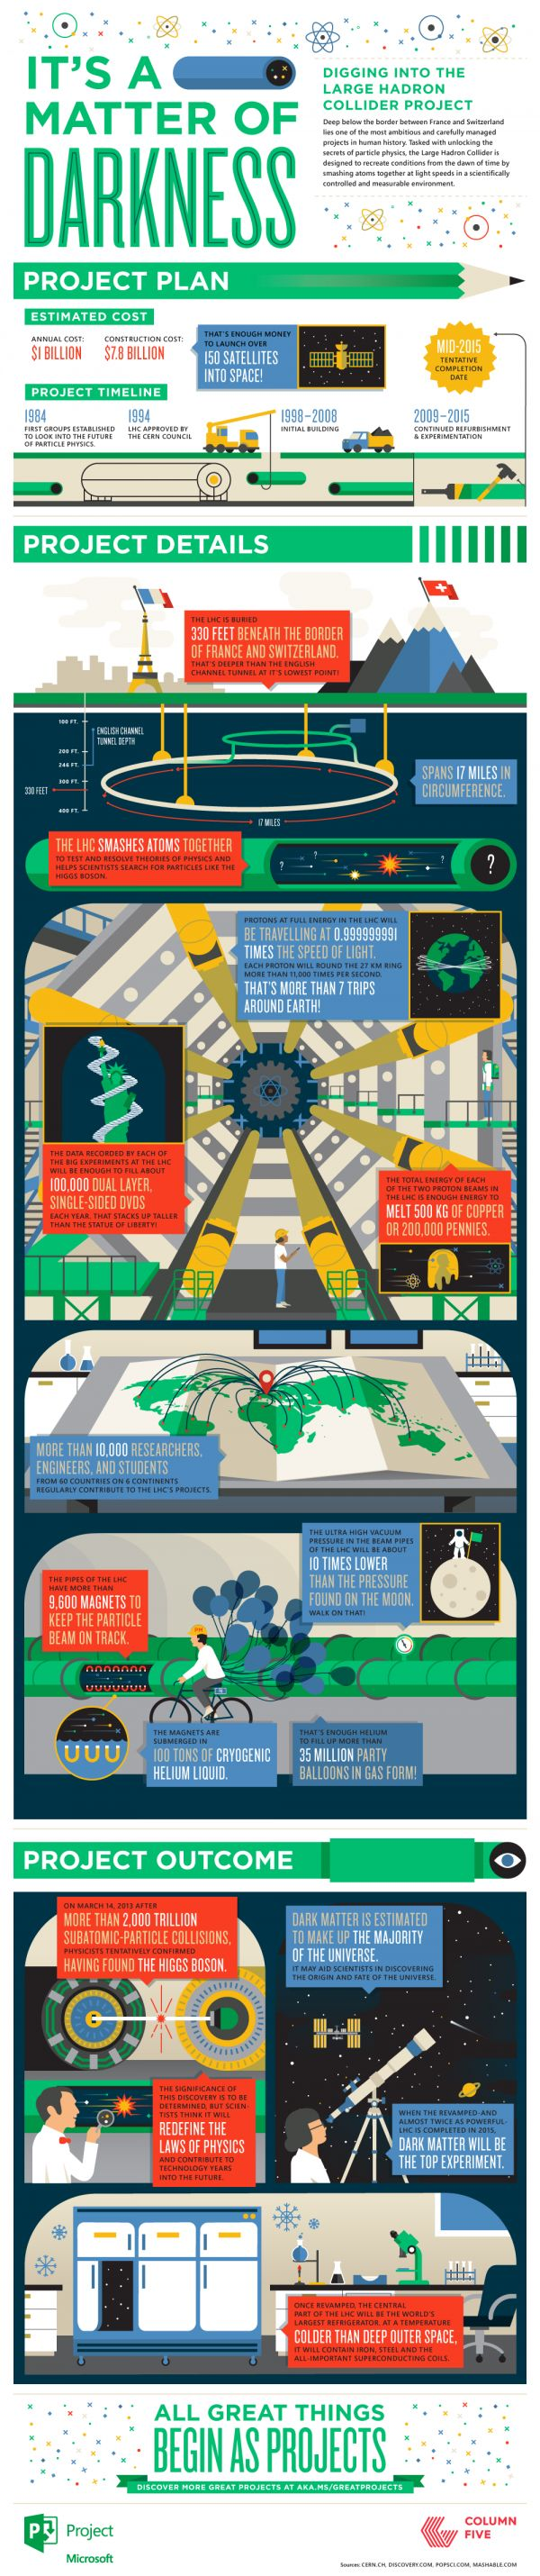 News programs and projects of jagisa paper bags - It S A Matter Of Darkness Digging Into The Large Hadron Collider Project Infographic